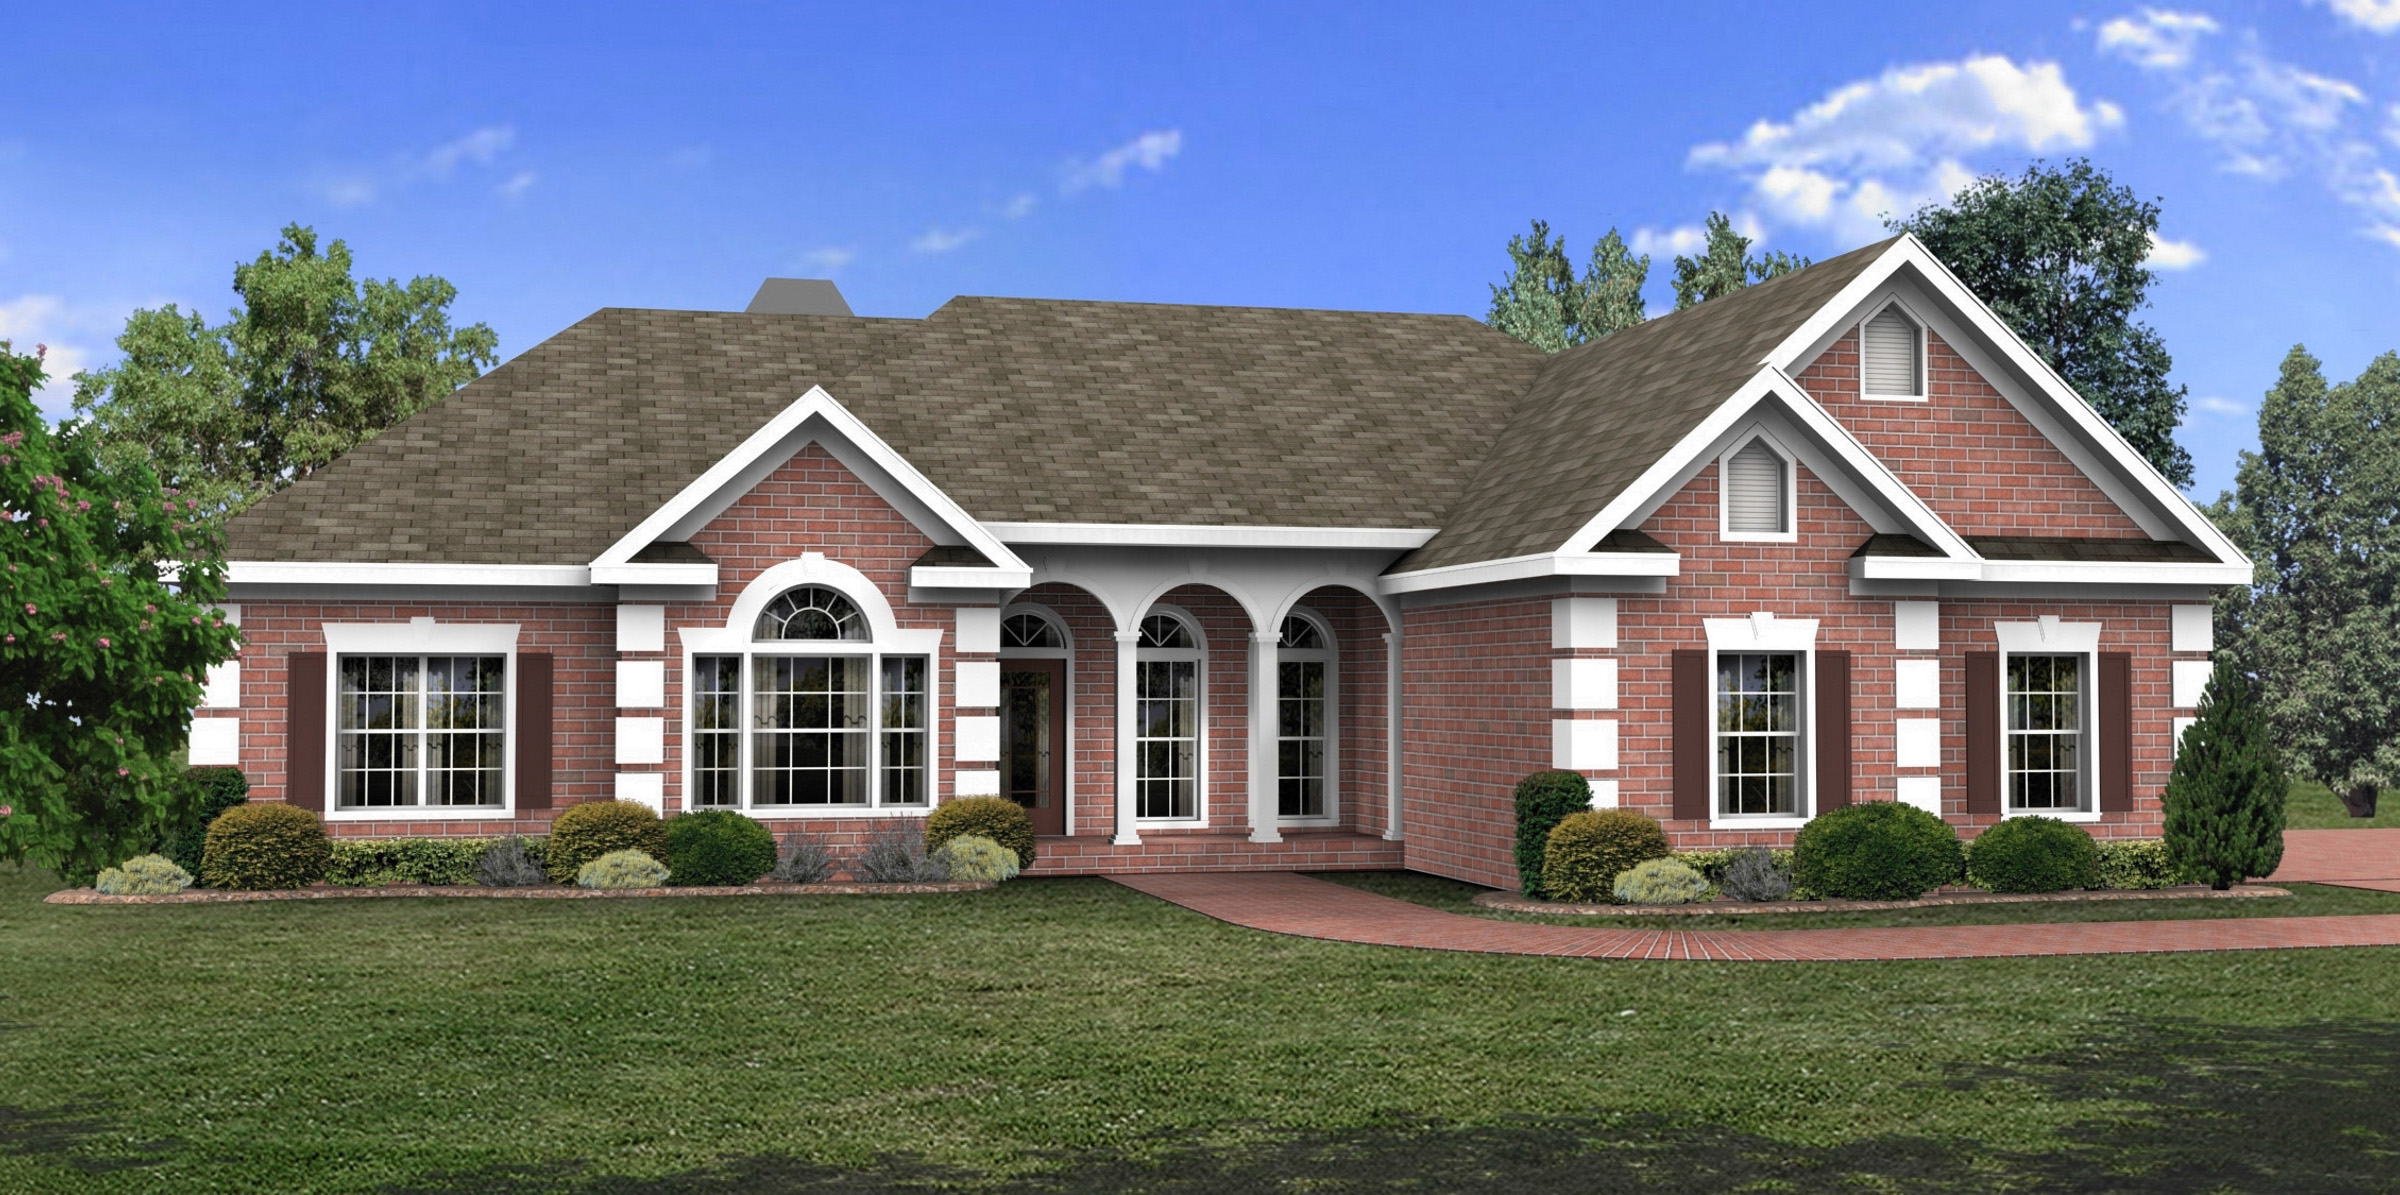 Luxurious ranch home plan 2027ga ranch 1st floor for Ranch style house plans with bonus room